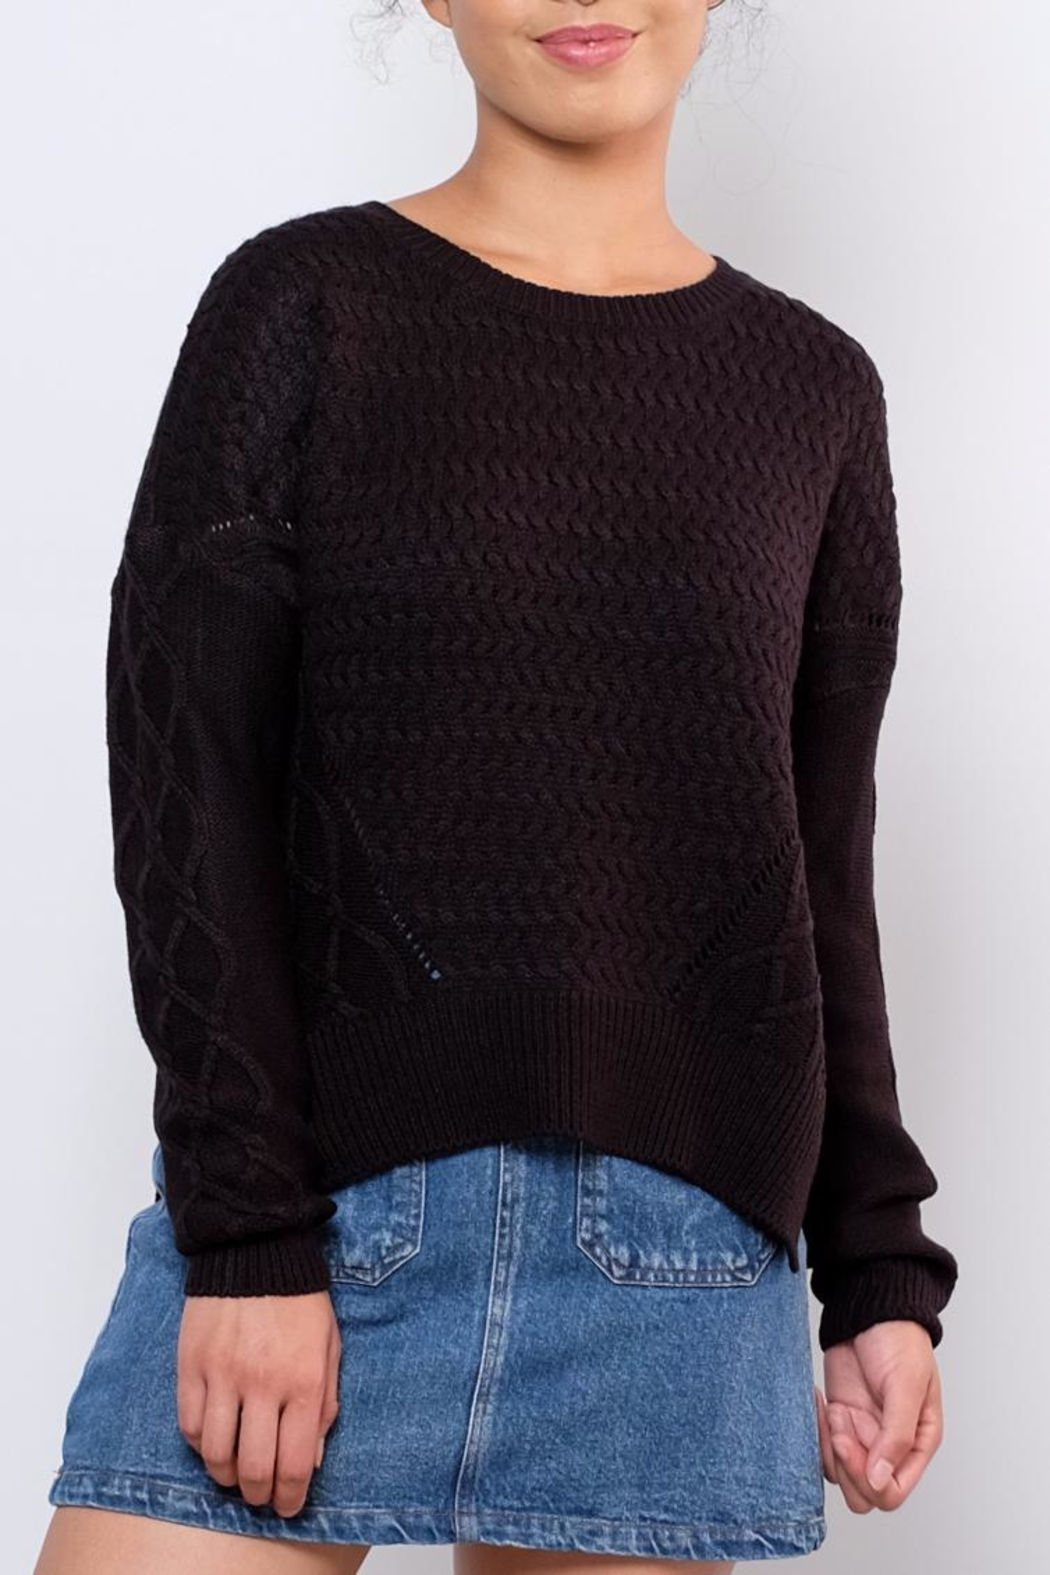 Only Cable Knit Sweater From Vancouver By 8th Main Shoptiques